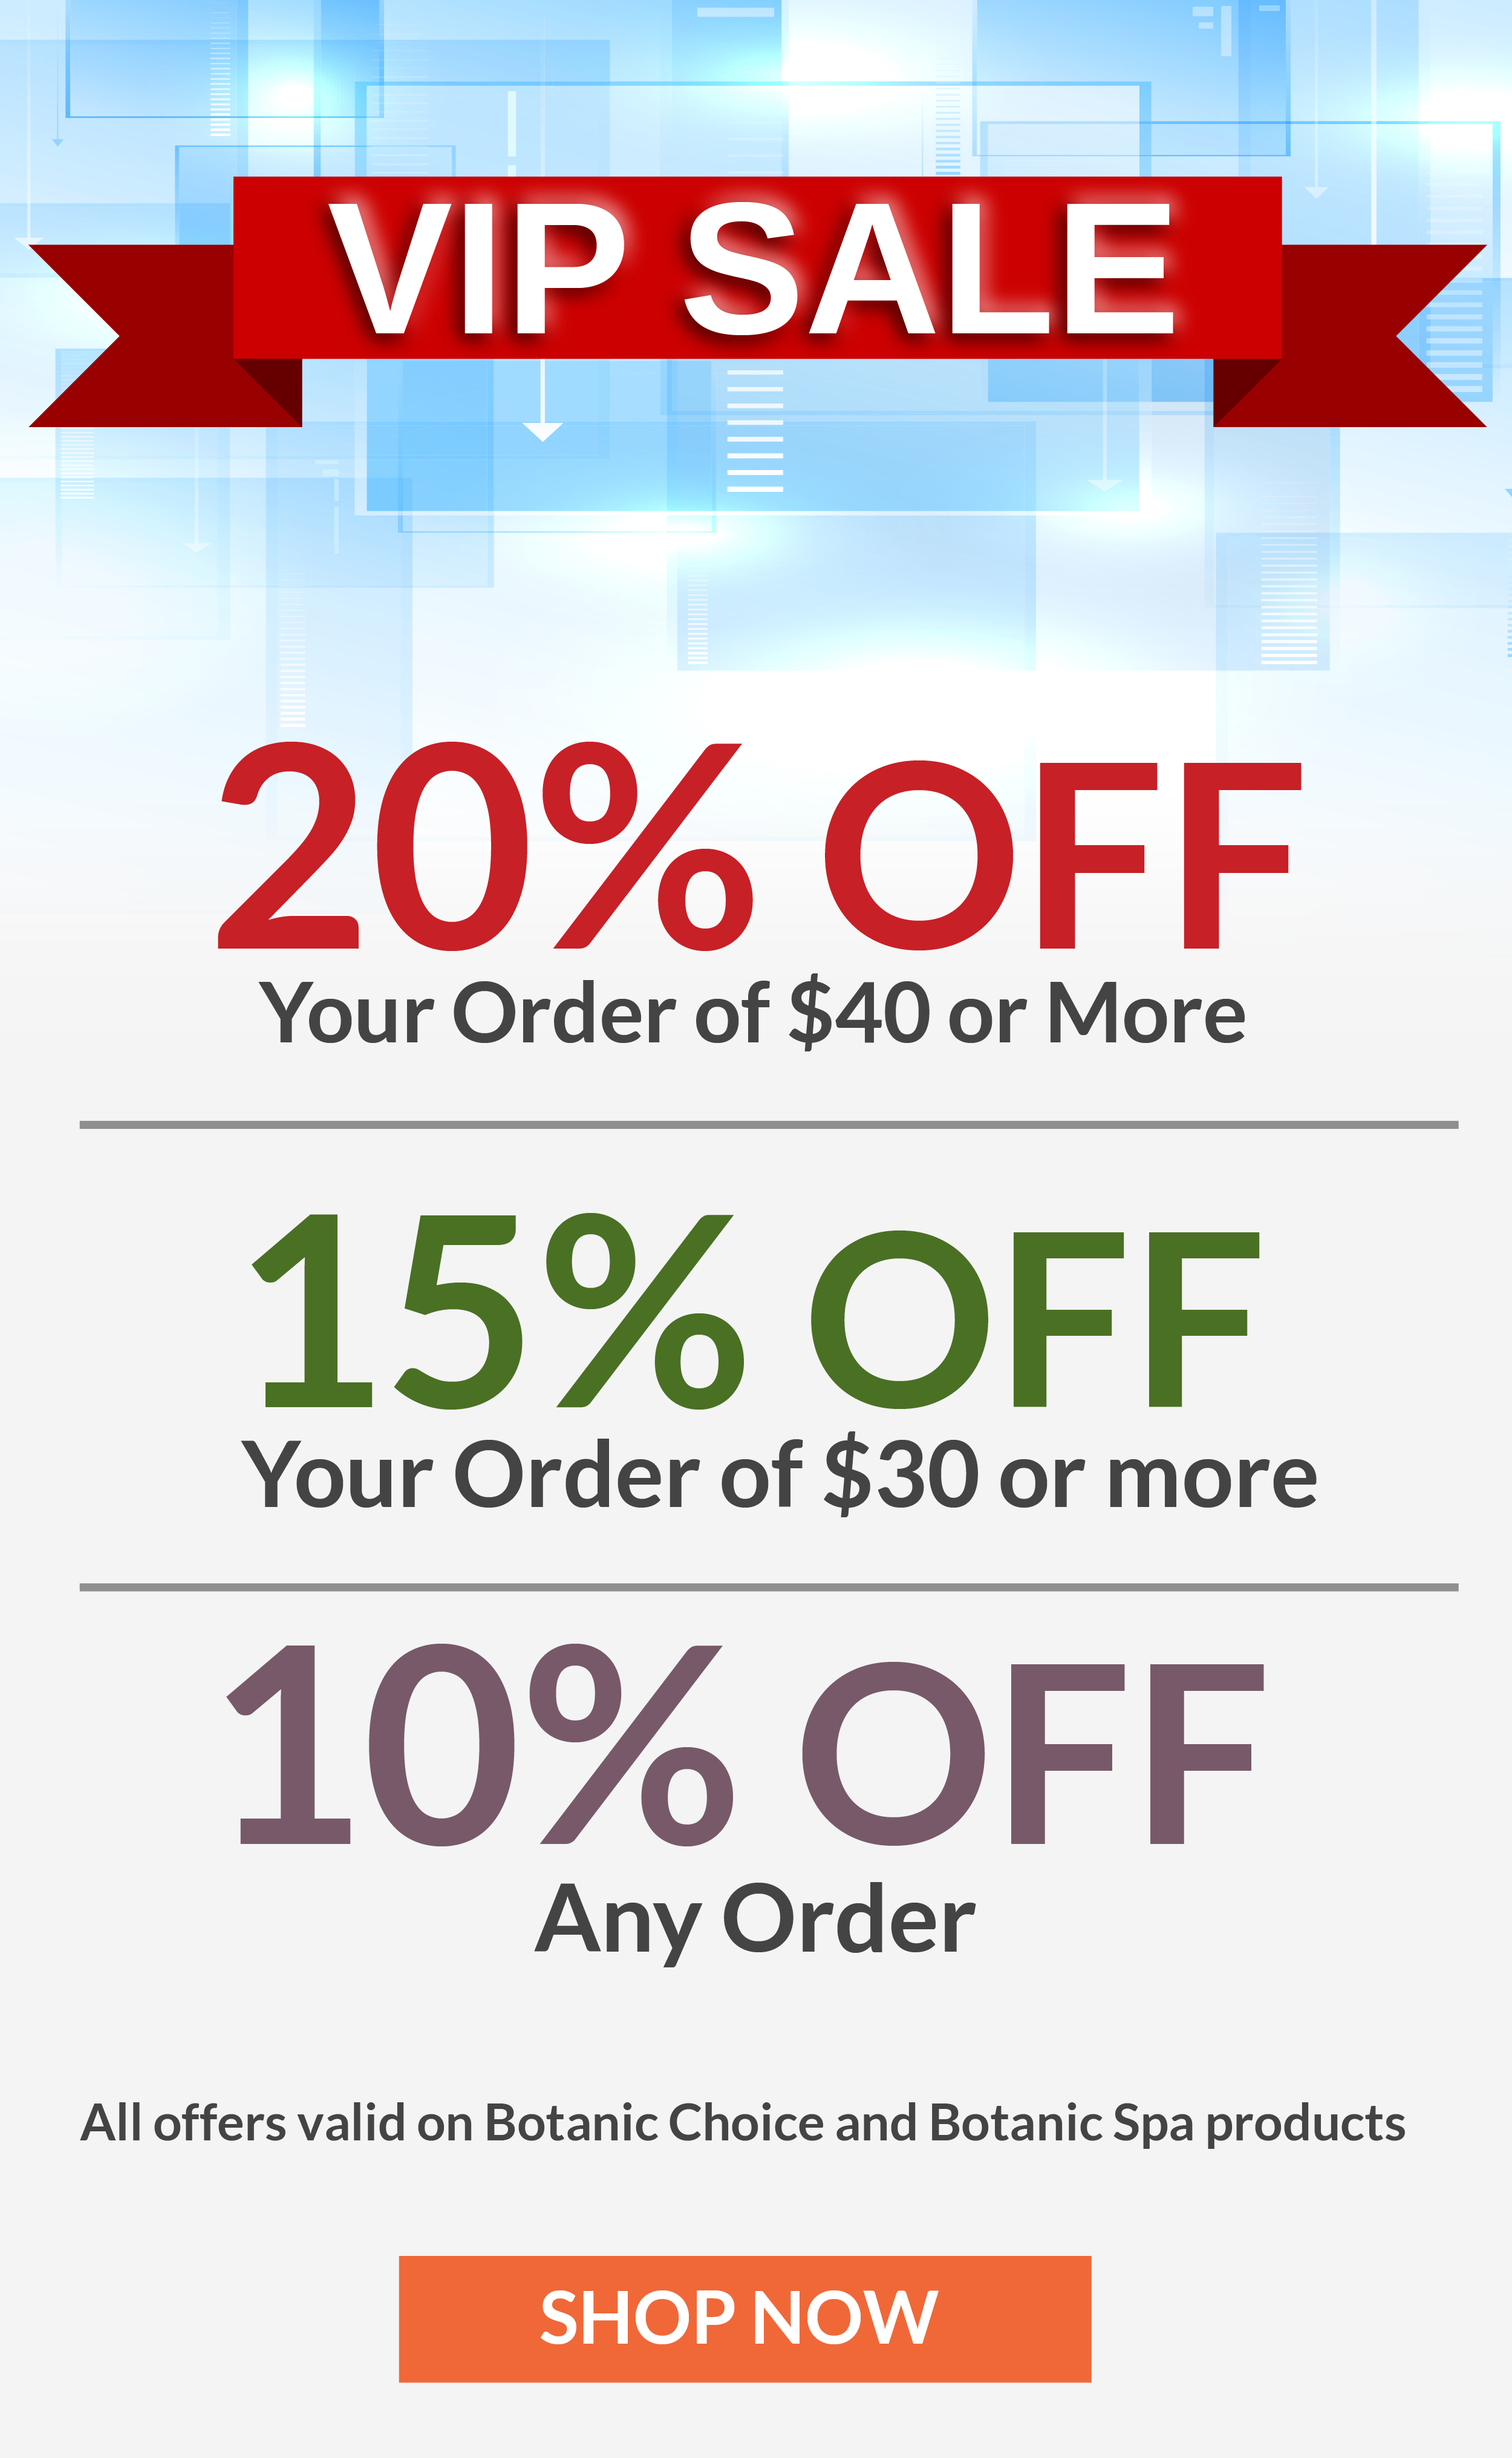 VIP SALE - 20% OFF your order of $40+ - 15% OFF your order of $30 or more - 10% OFF any order